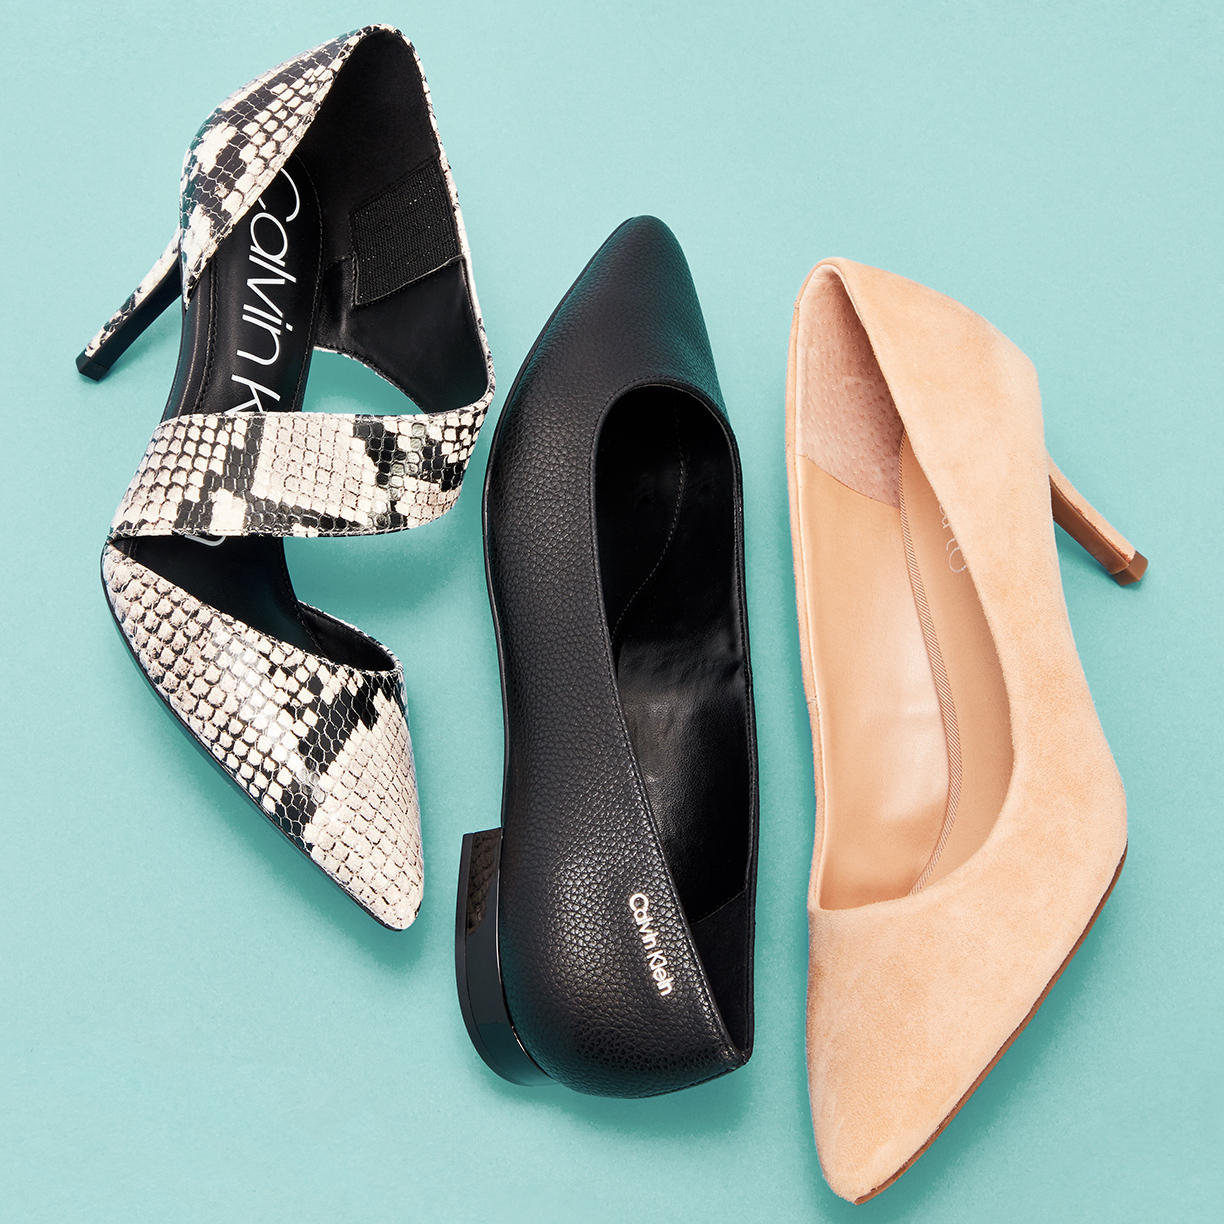 Calvin Klein Shoes Up to 60% Off